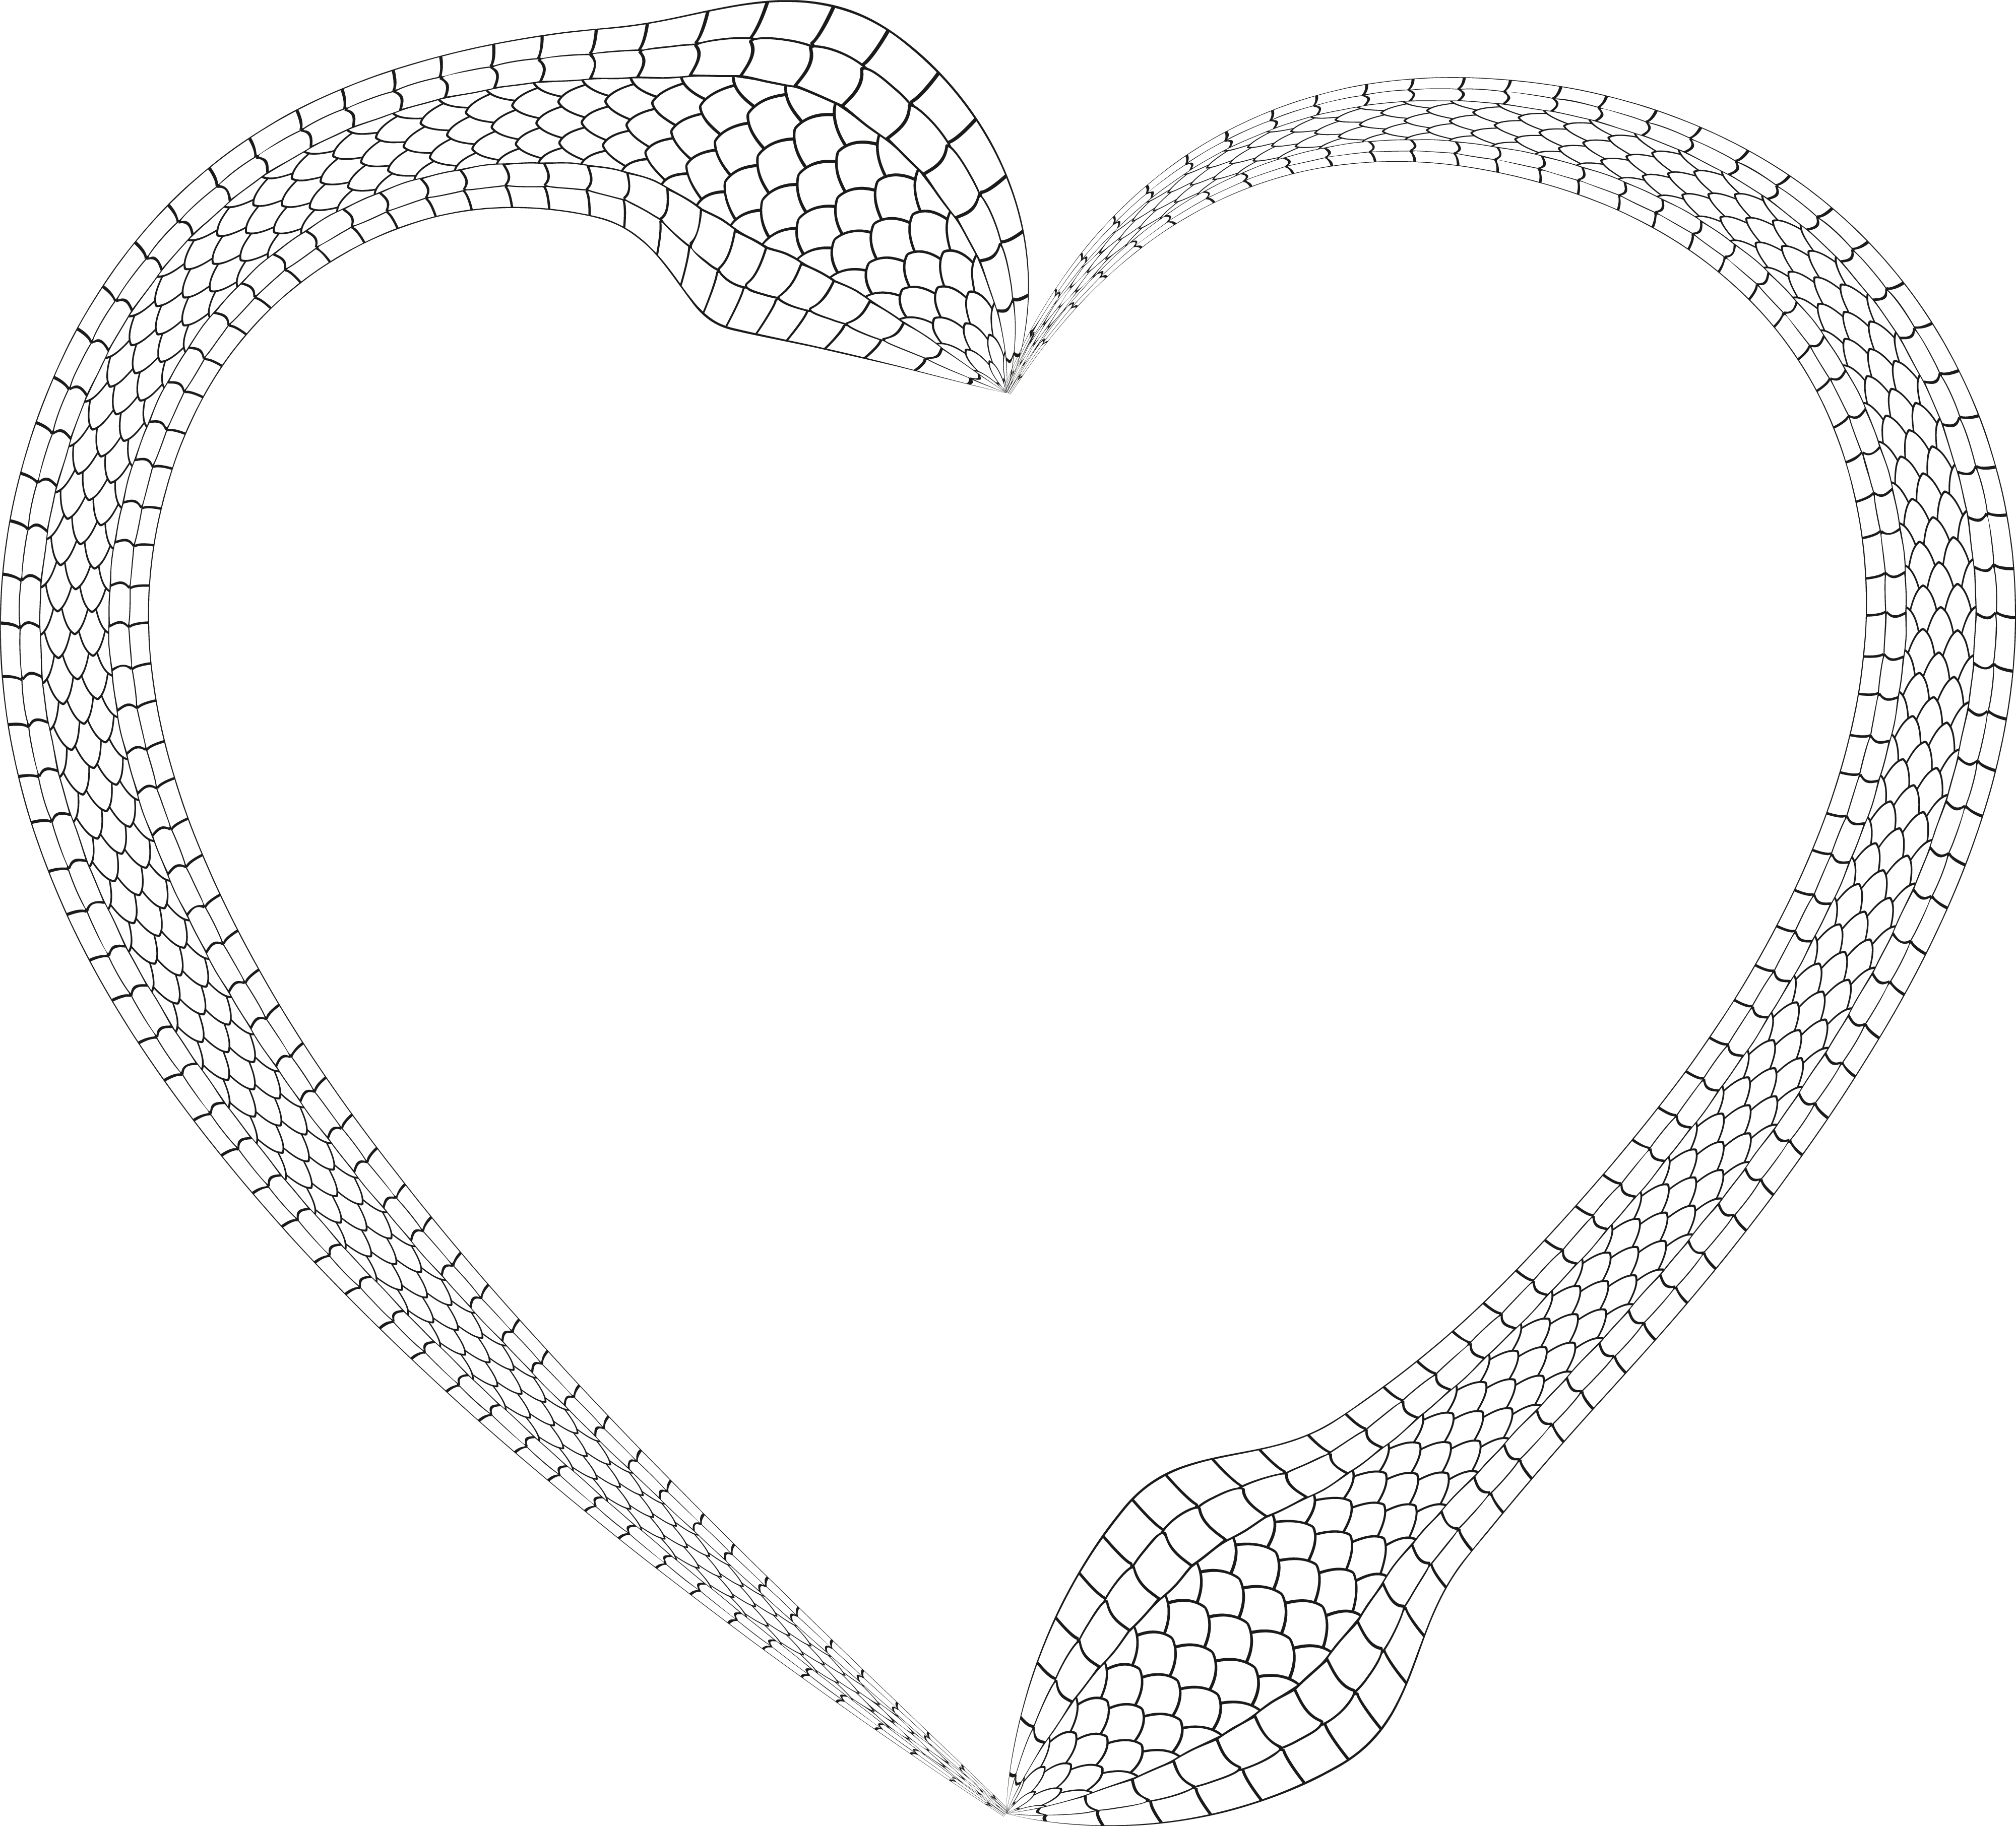 Stethoscope heart clipart free image black and white library 28+ Collection of White Heart Clipart Png | High quality, free ... image black and white library